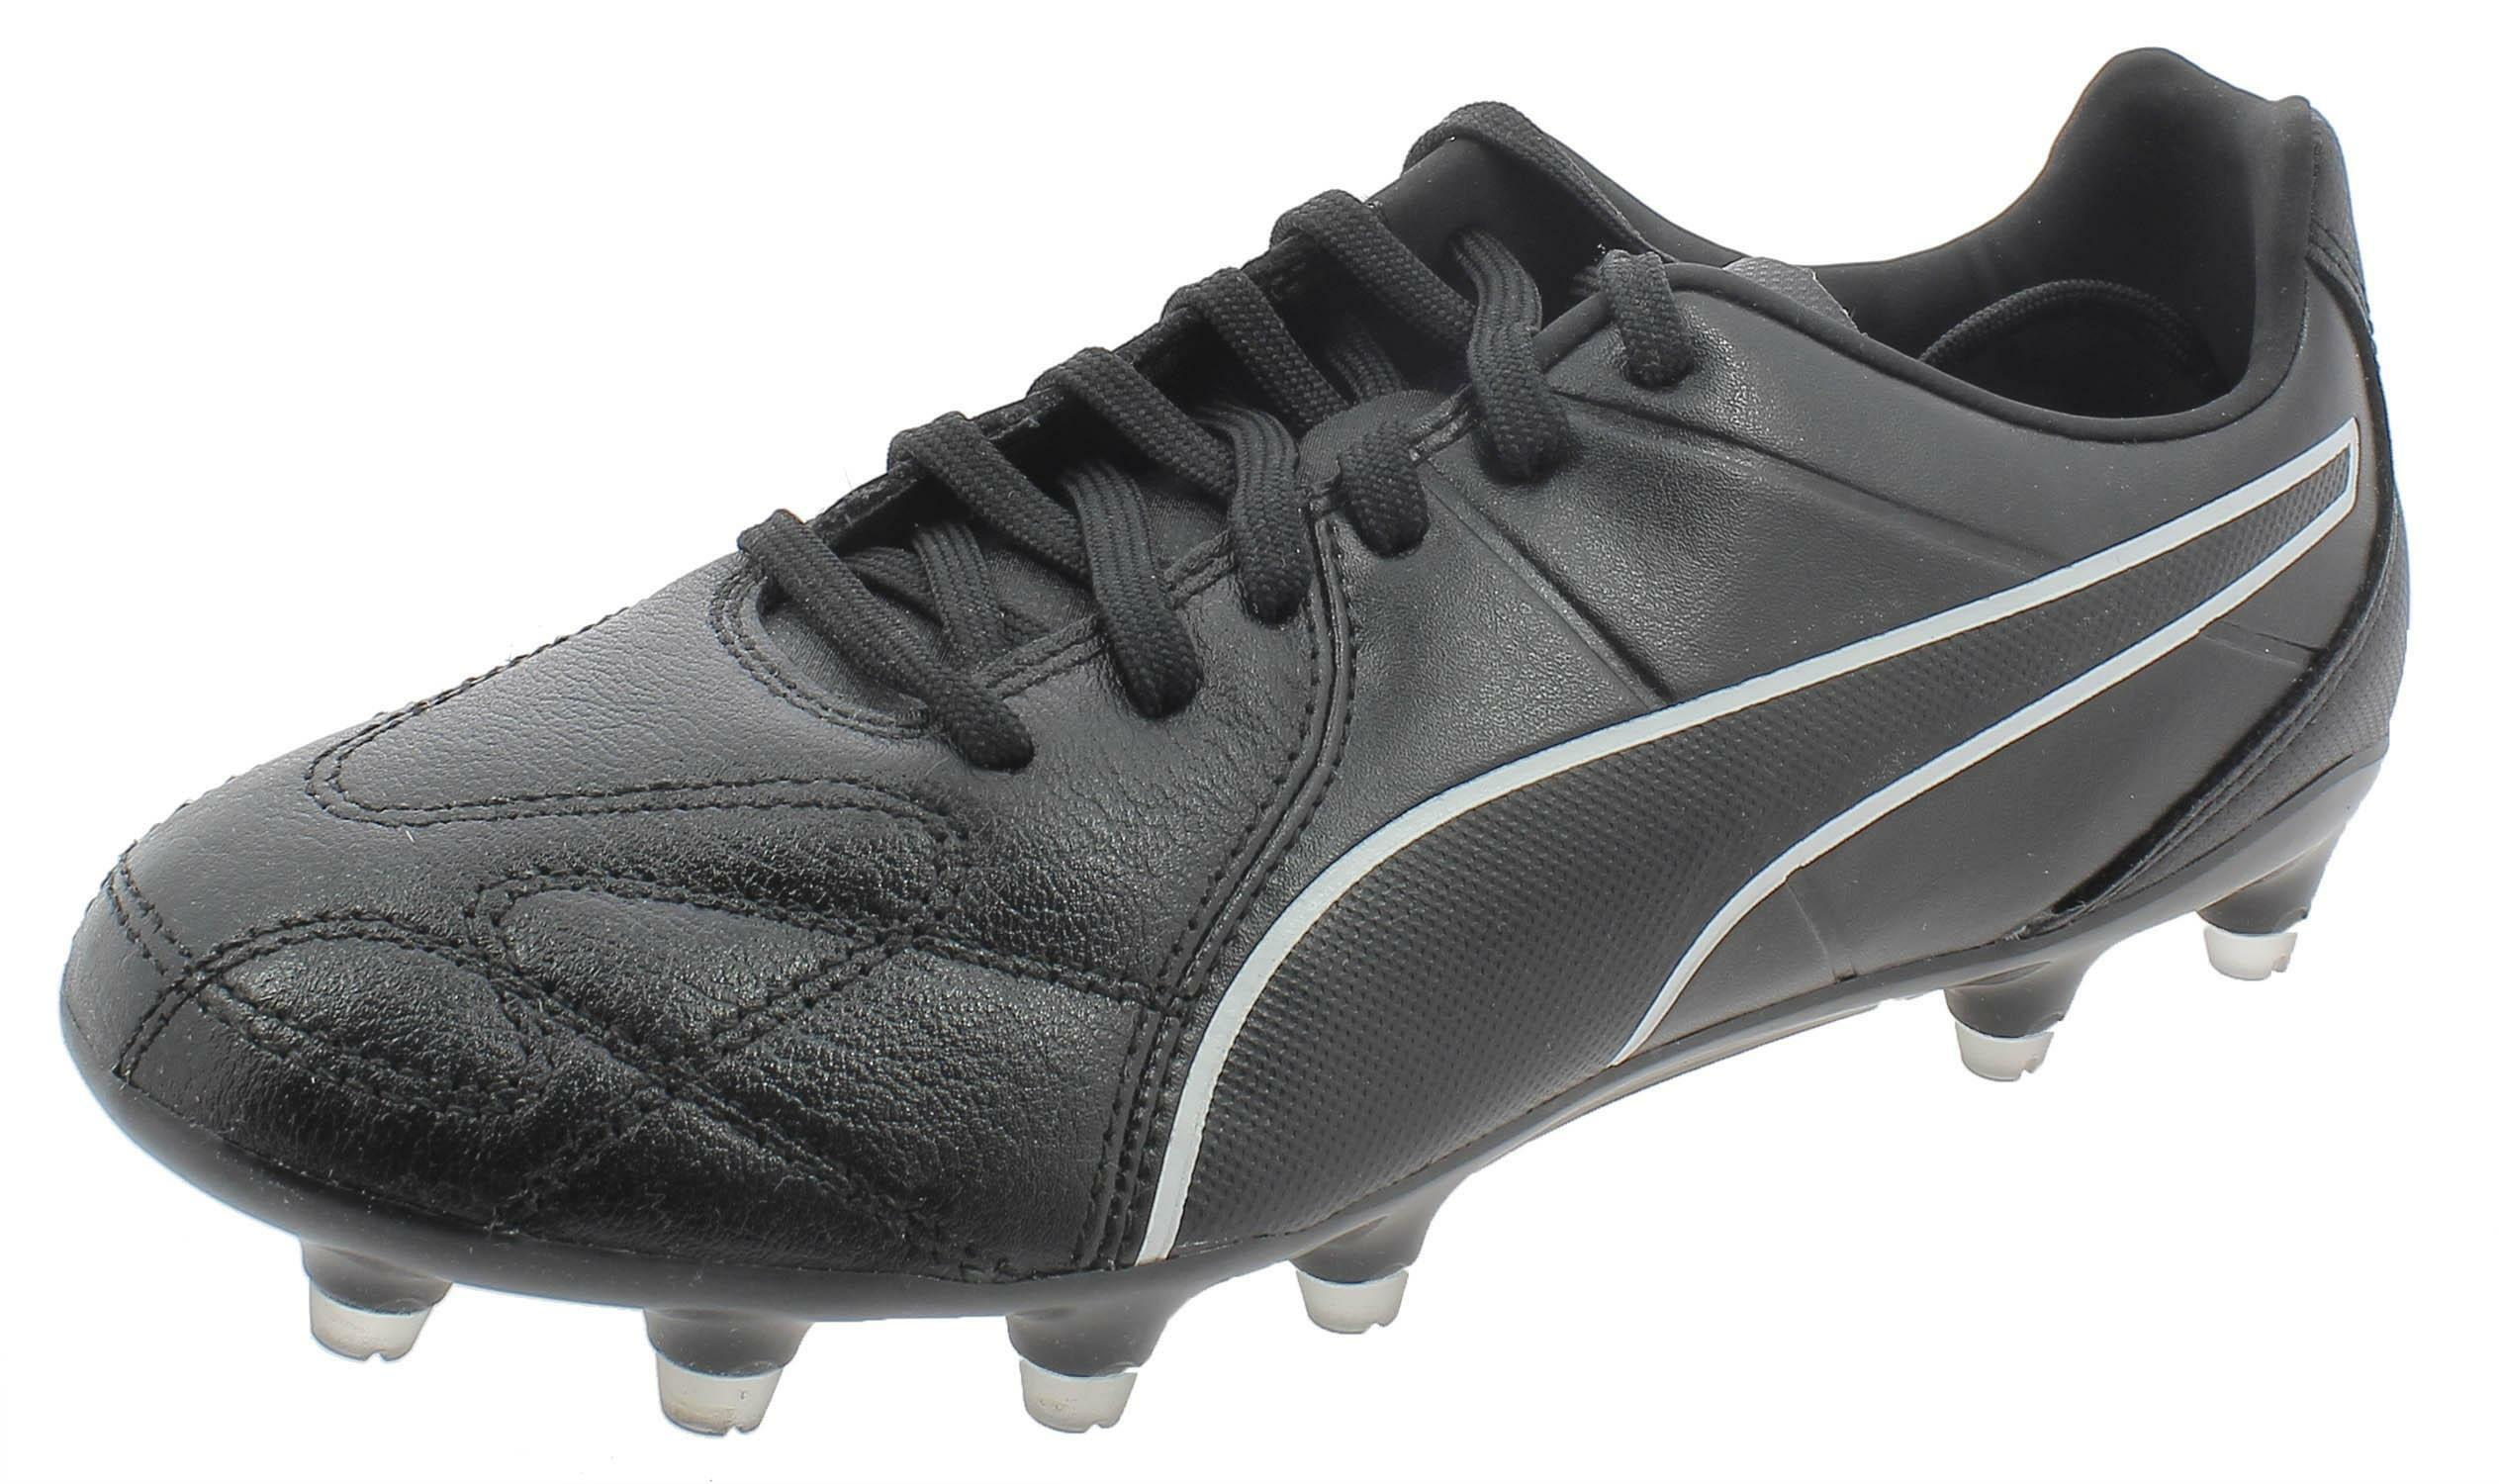 King Hero FG Football Shoe